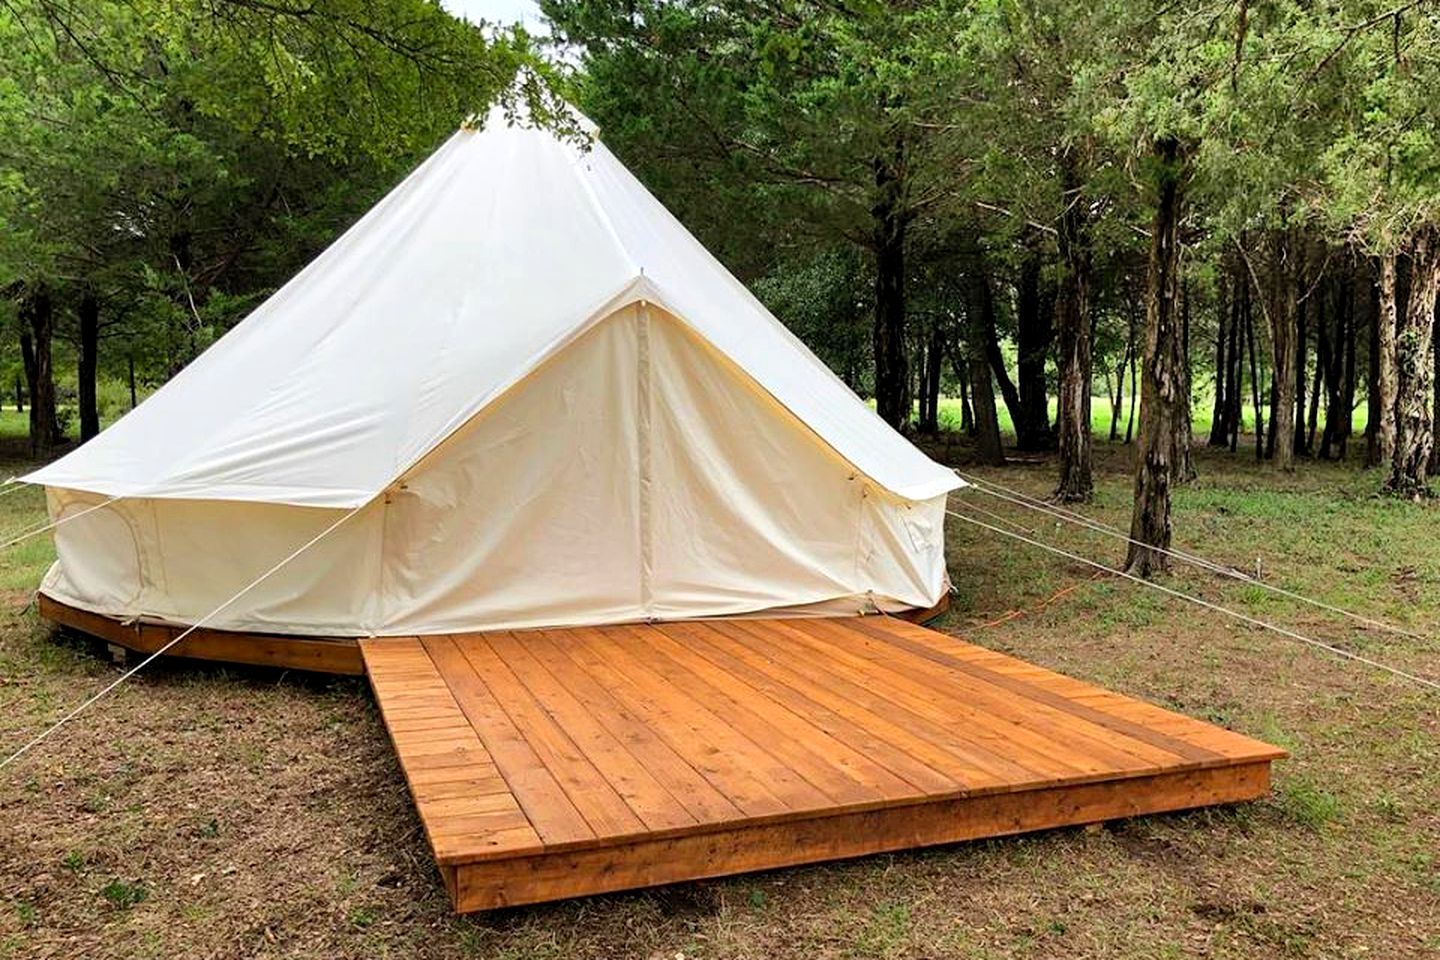 This gorgeous tent rental in Purdon is perfect for glamping near Dallas